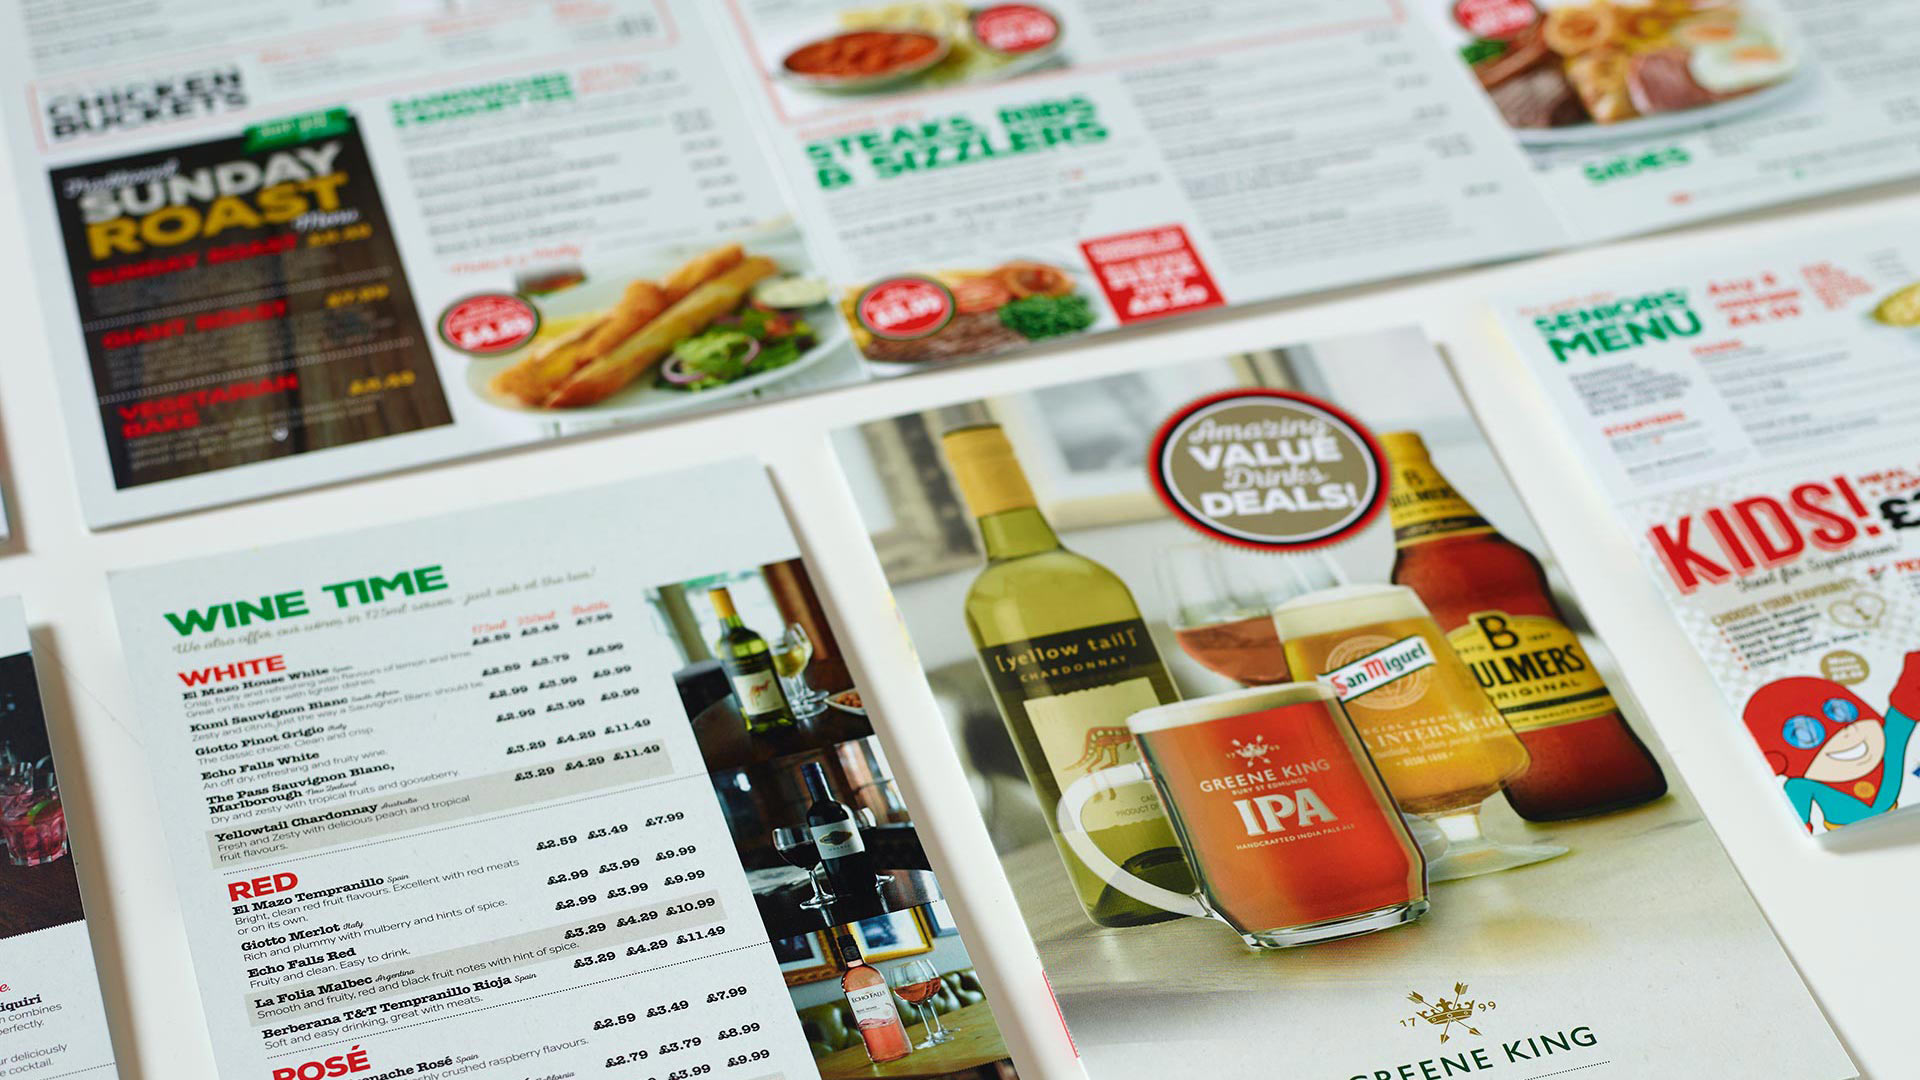 Greene King Menus